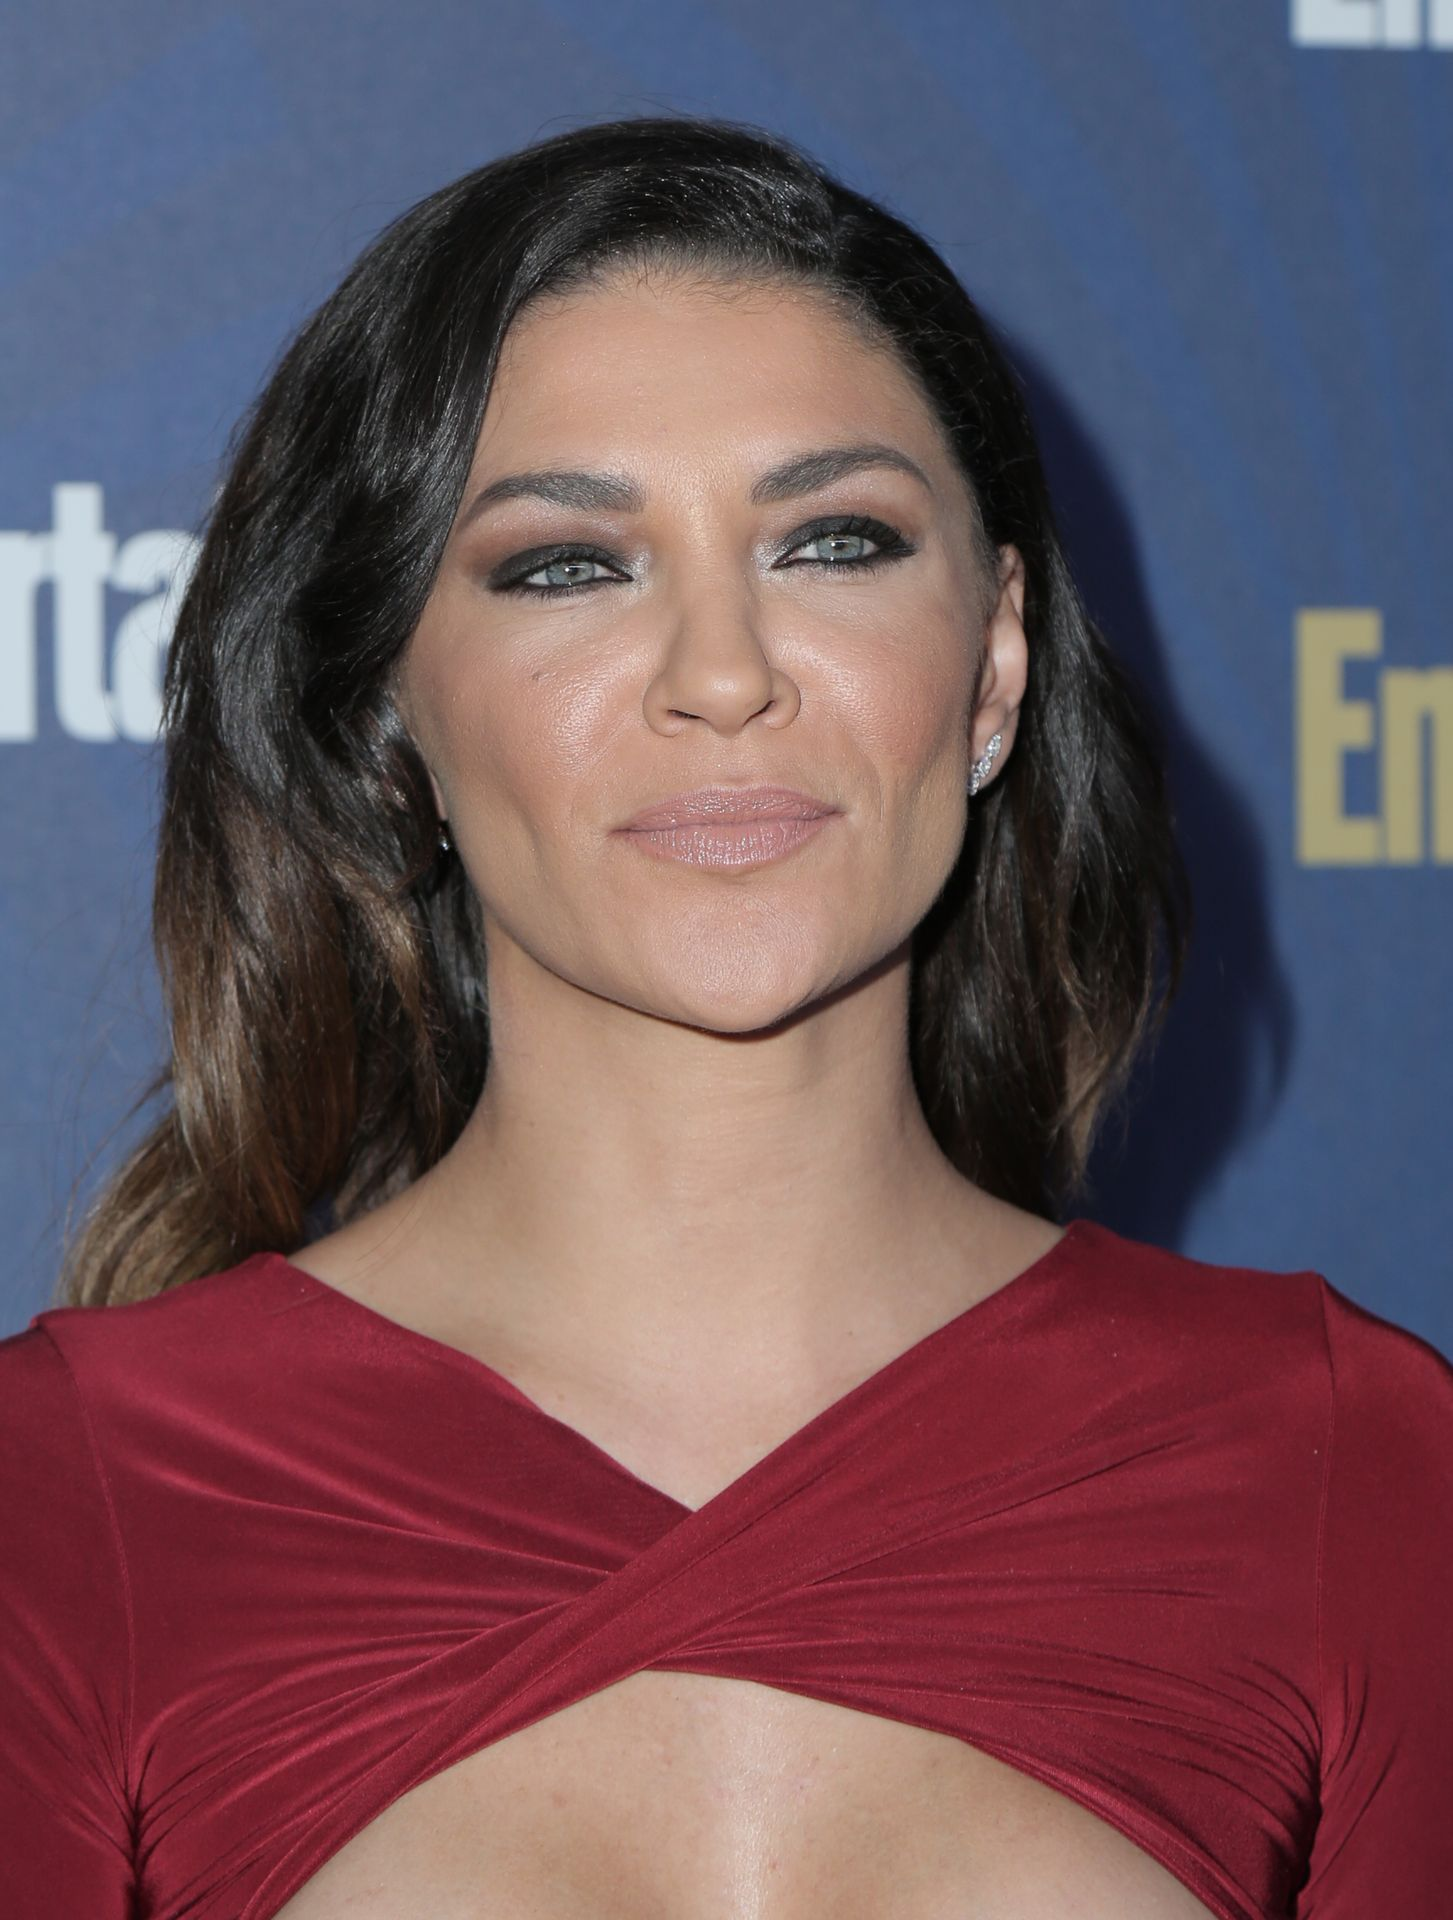 Jessica Szohr Shows Her Cleavage At The Entertainment Weekly Pre Sag Awards Celebration 0024